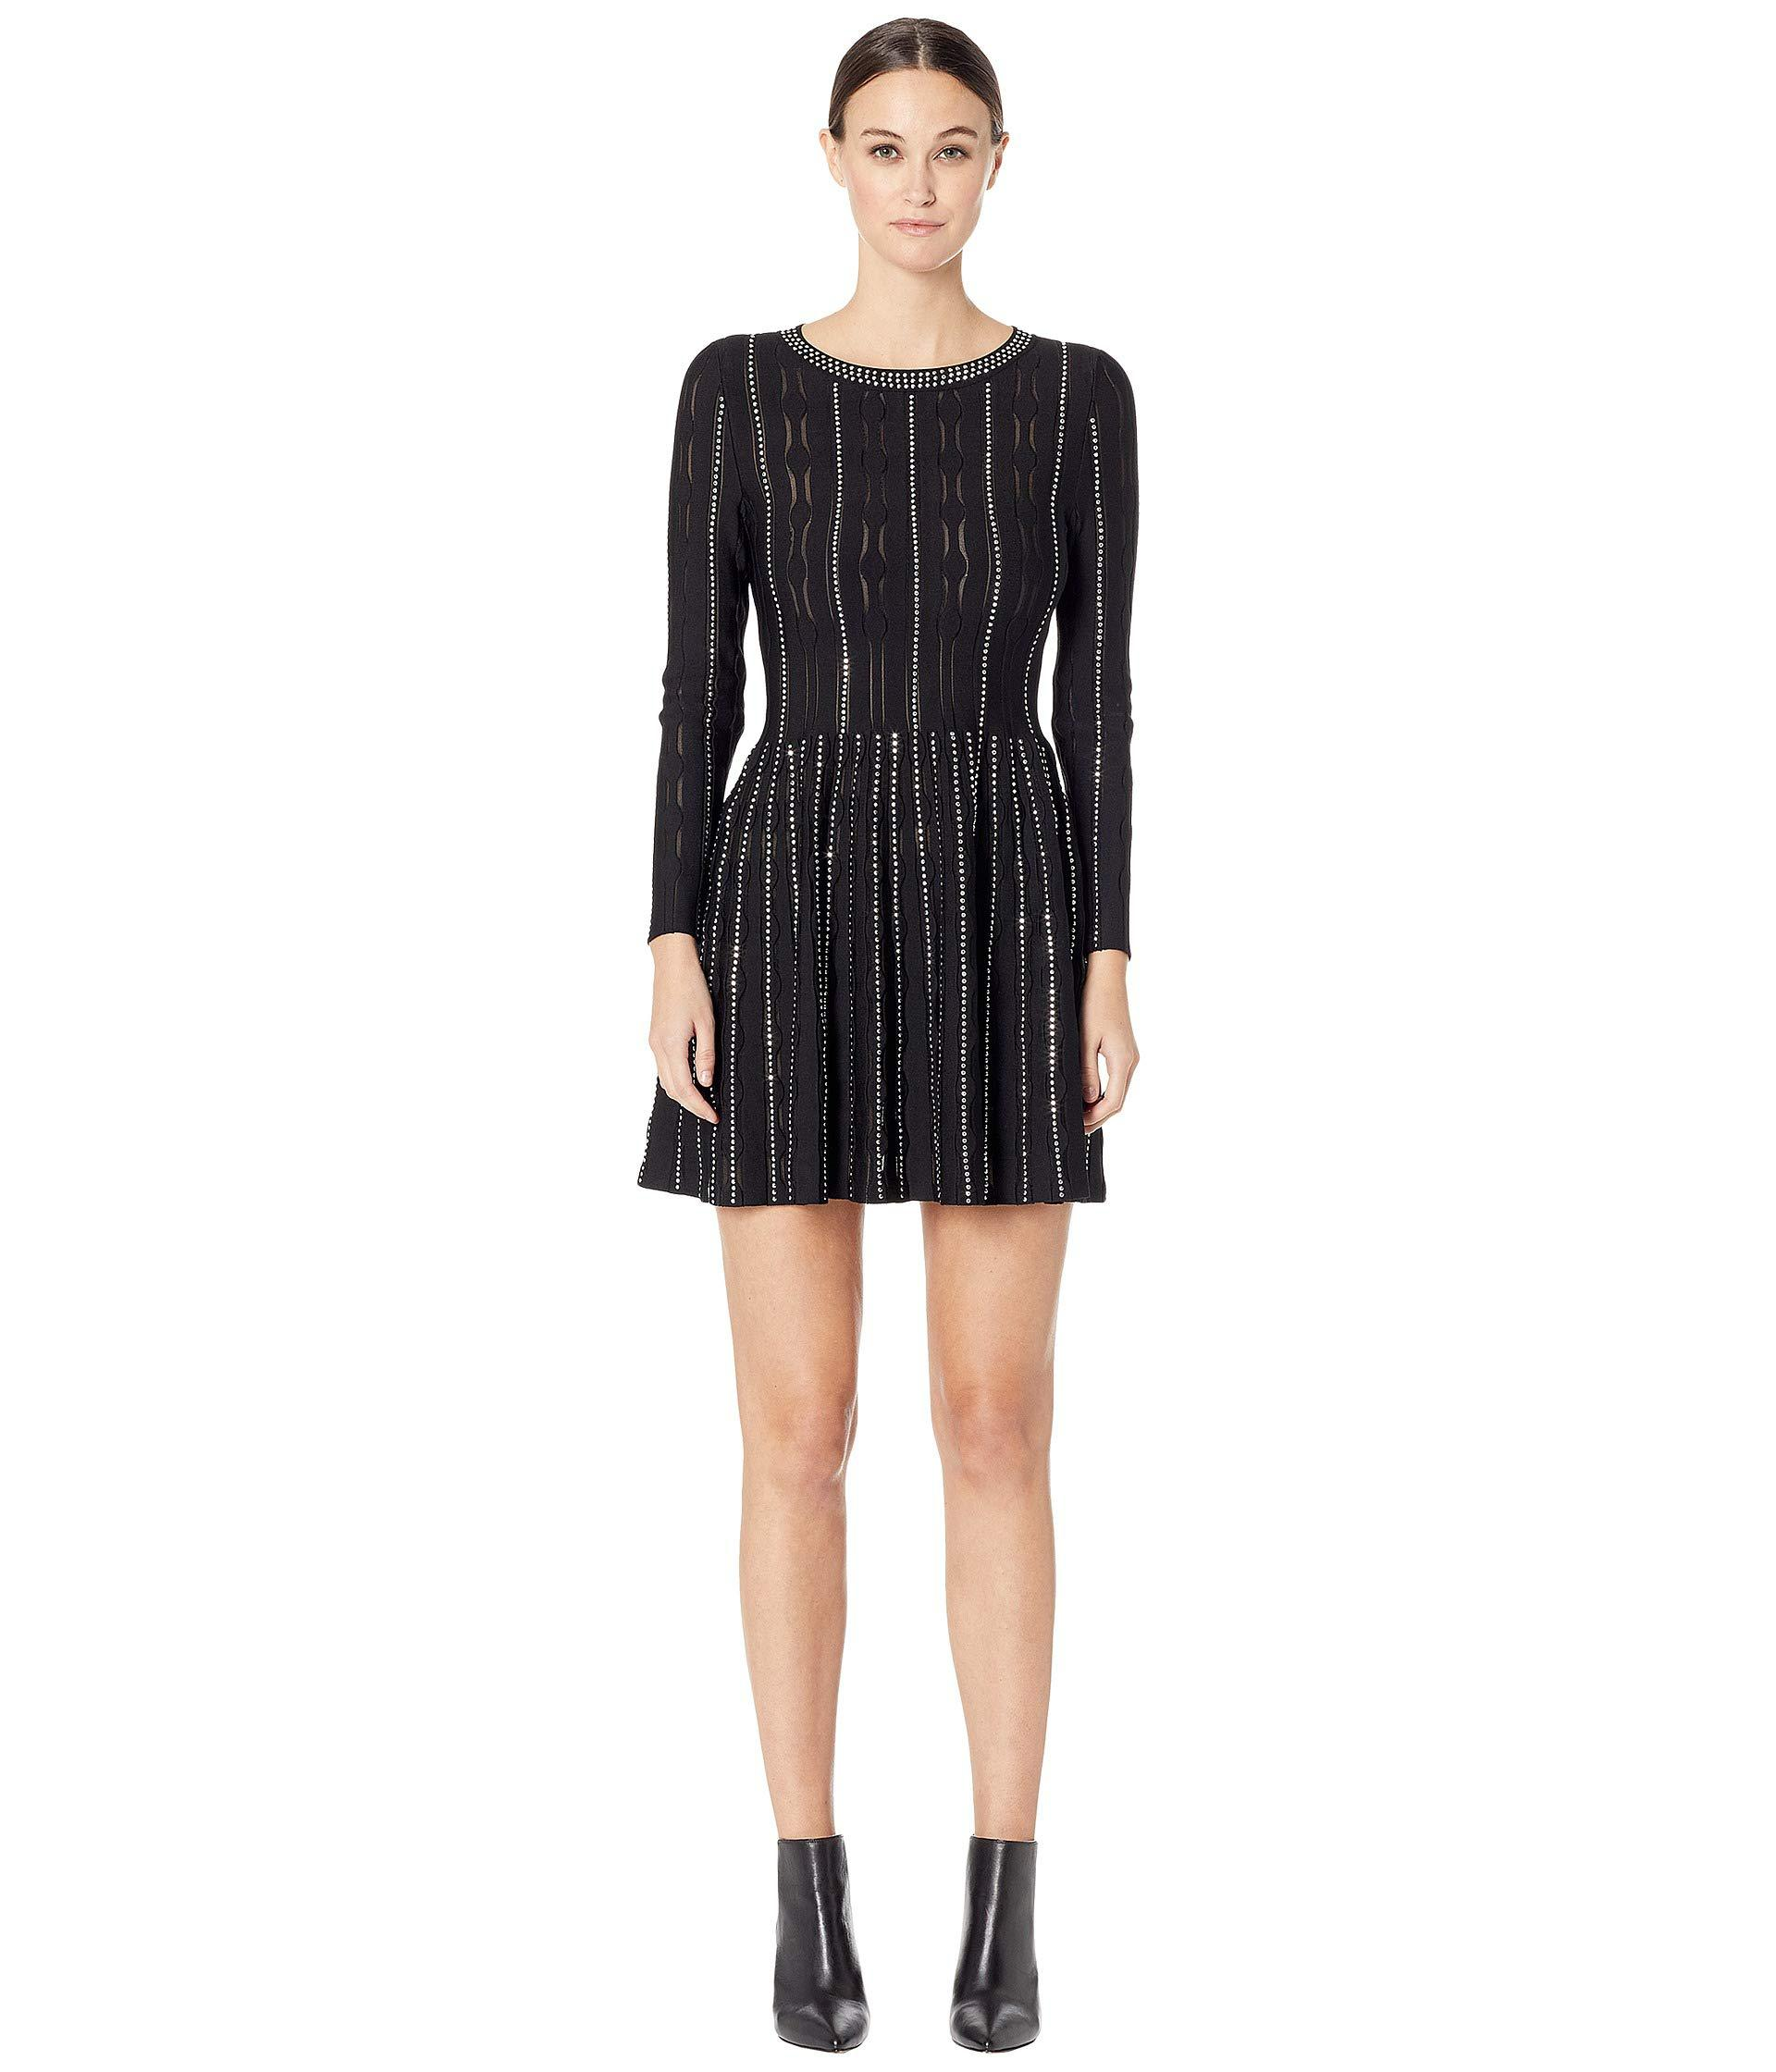 268e7360cac The Kooples Studded Sweater Dress in Black - Save 24% - Lyst